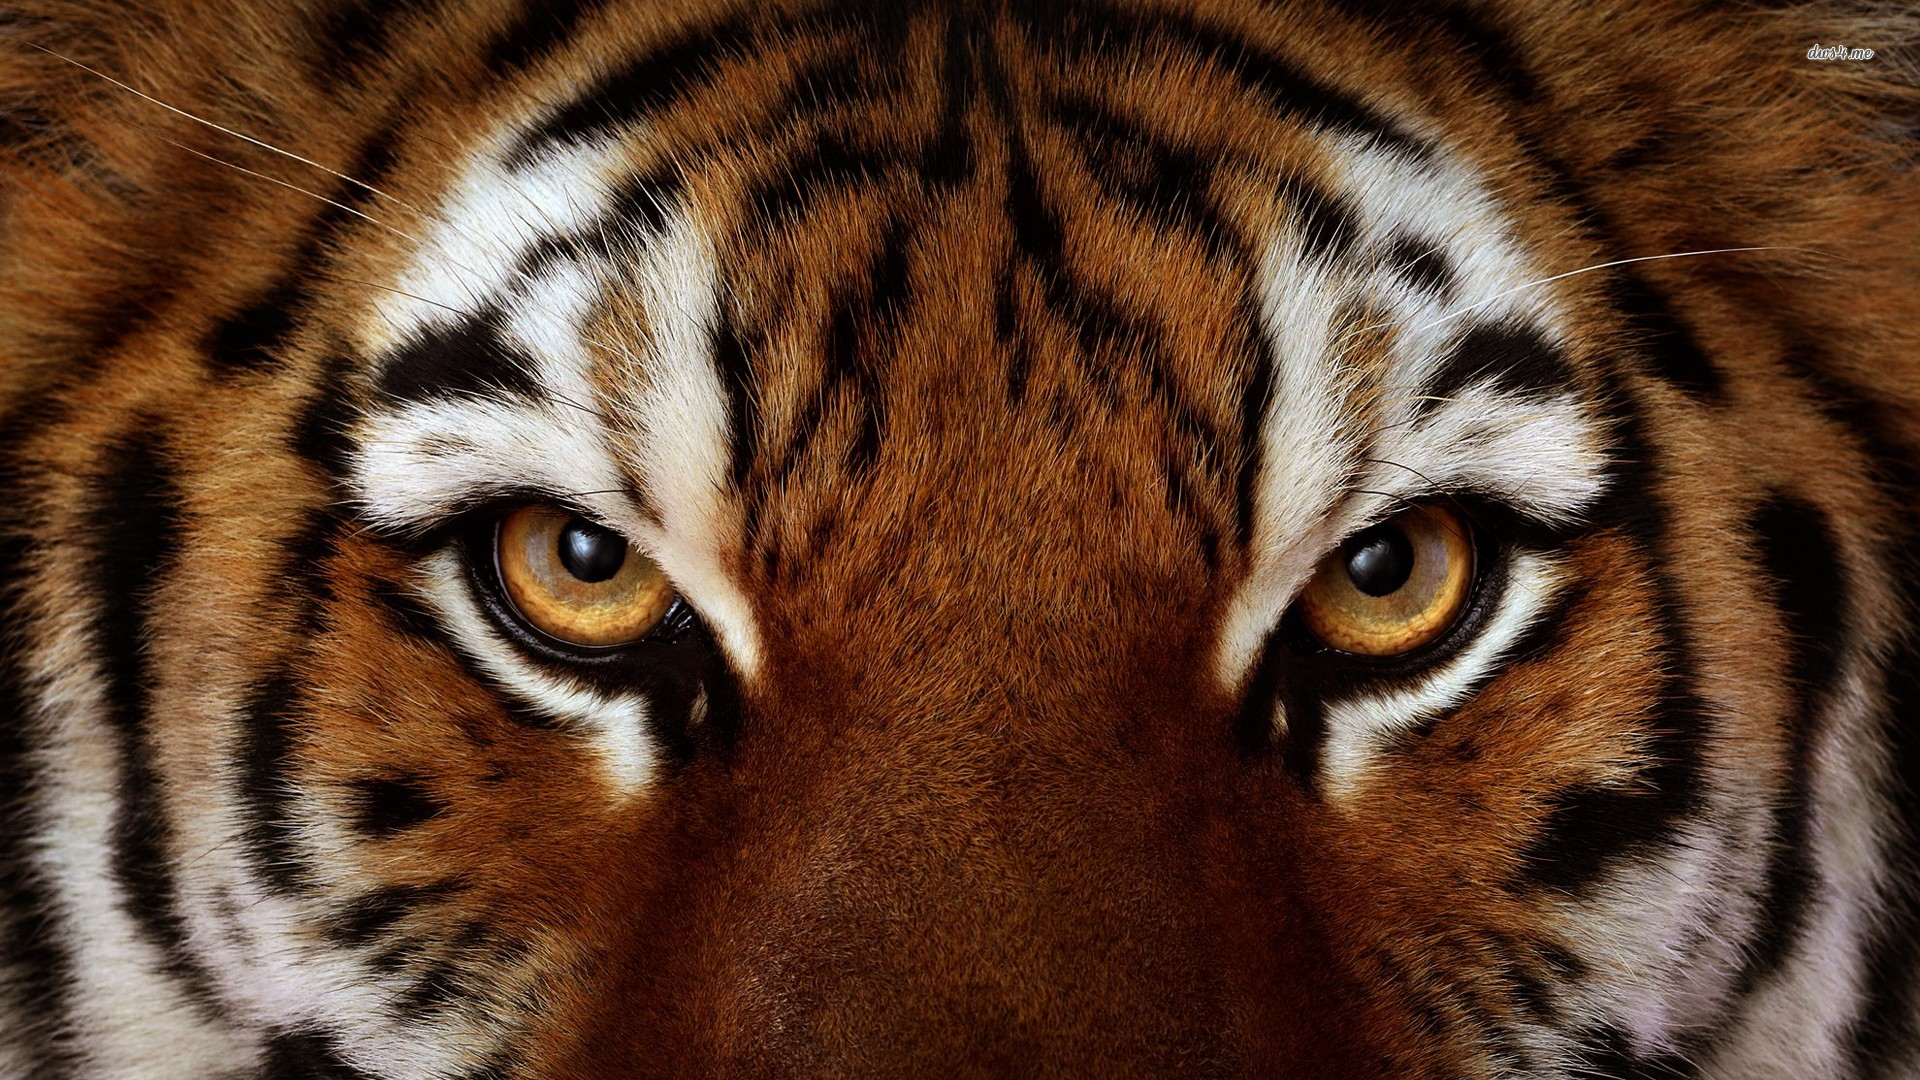 tiger eye wallpaper #3